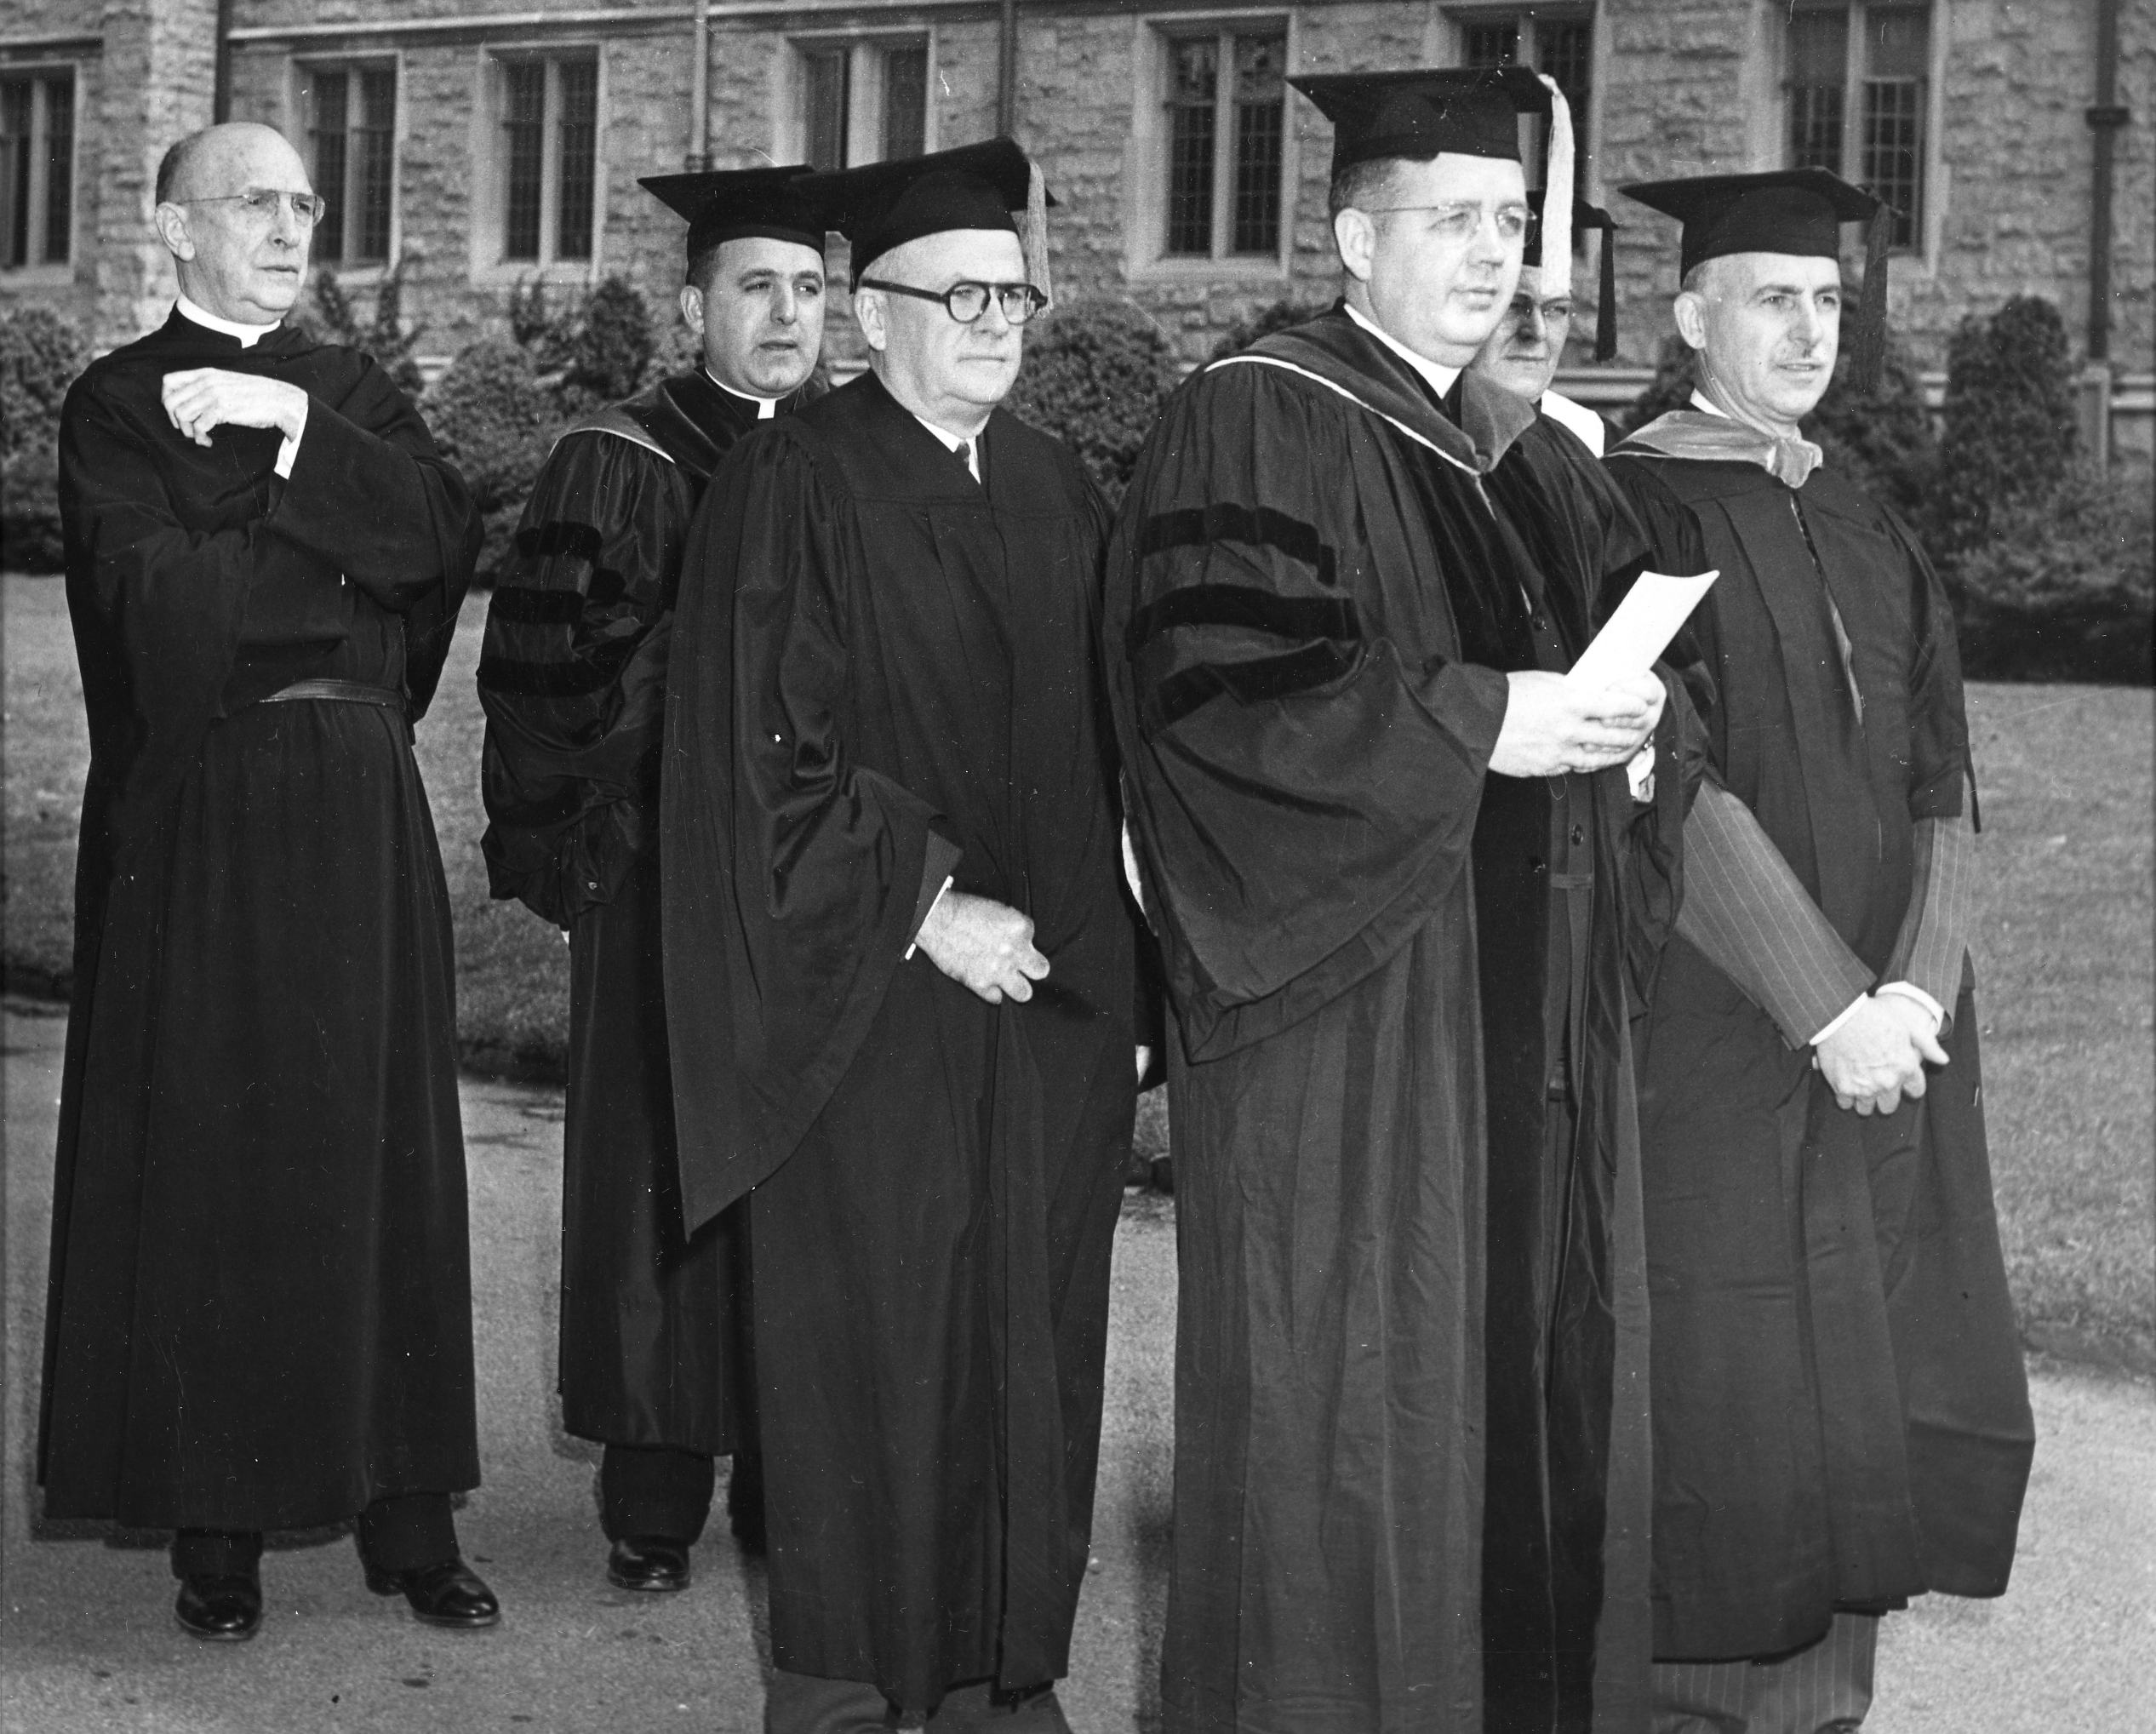 Academic procession, Villanvoa College Commencement, 1950